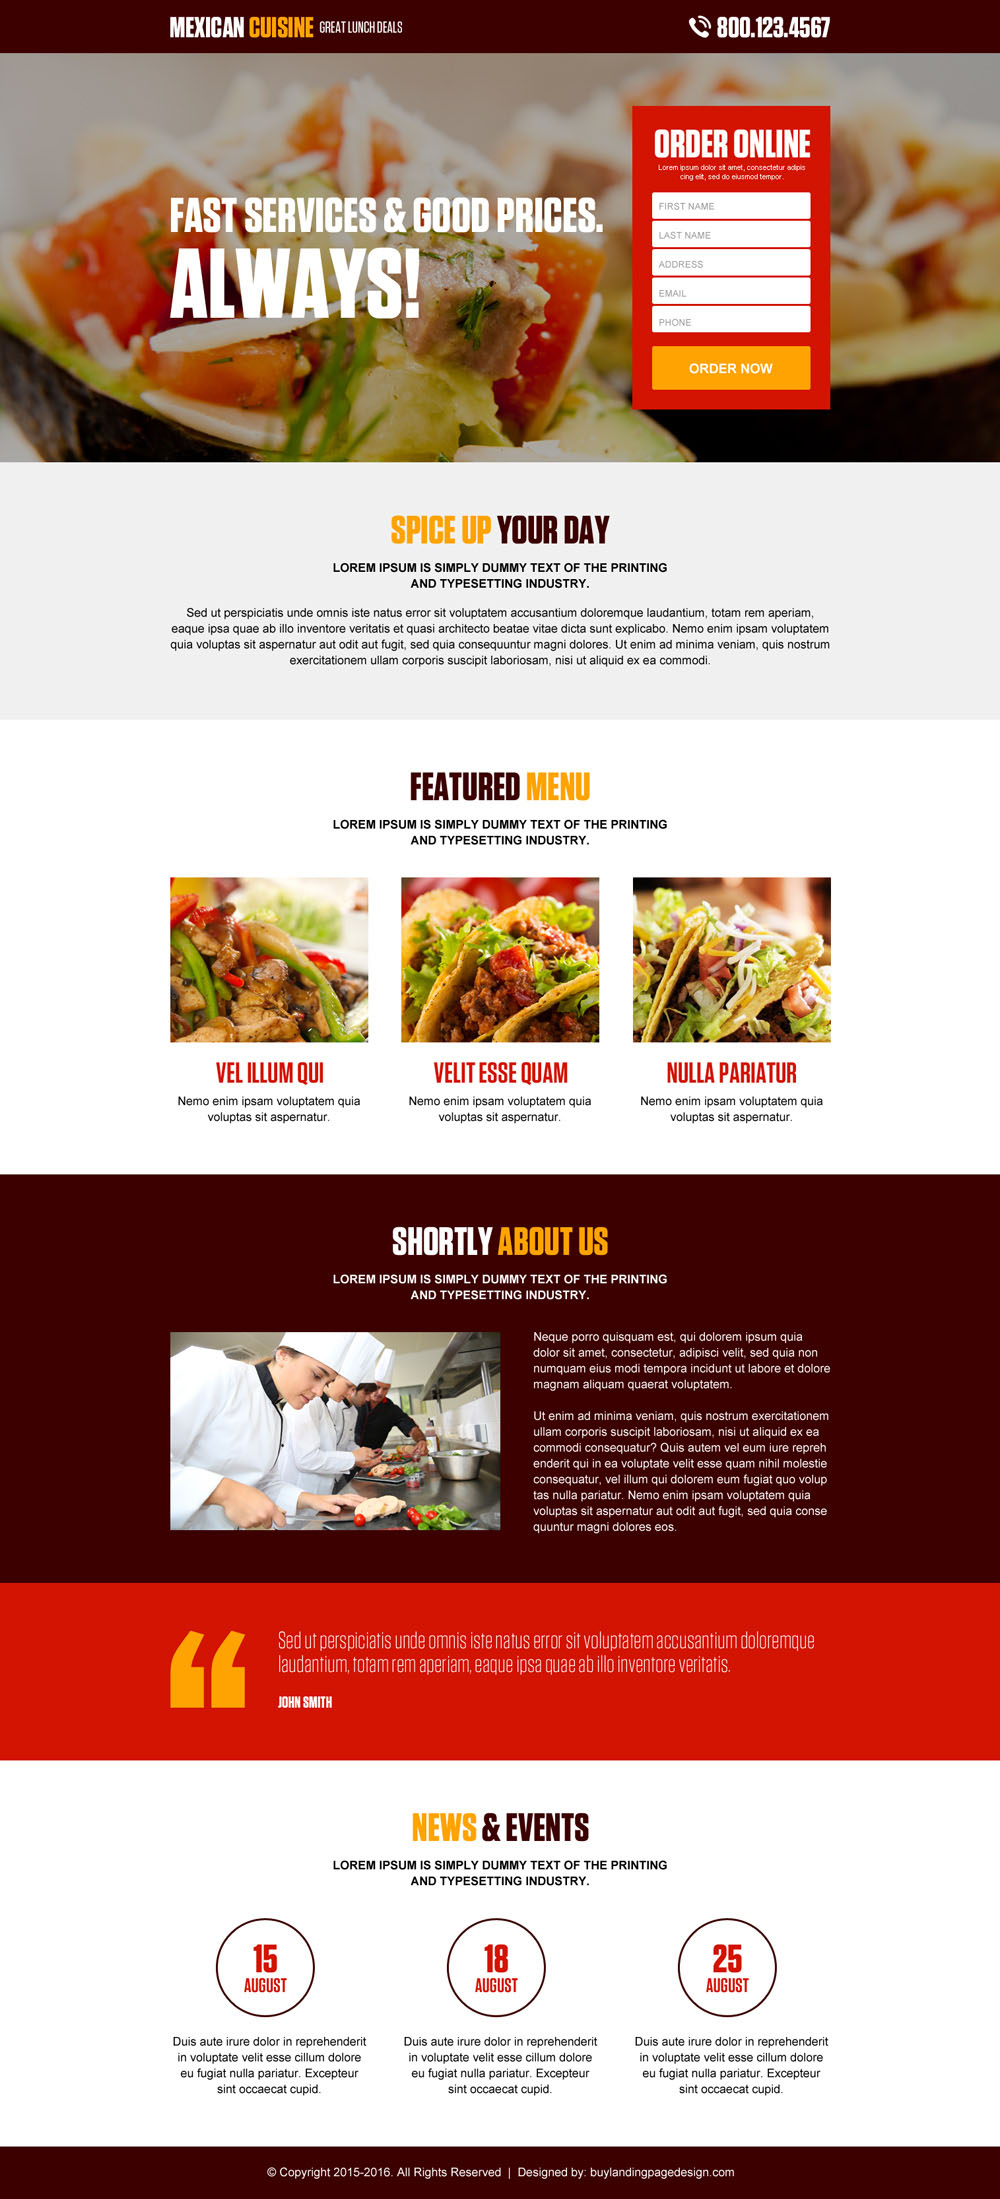 online-hotel-and-restaurant-lead-generation-converting-landing-page-design-002